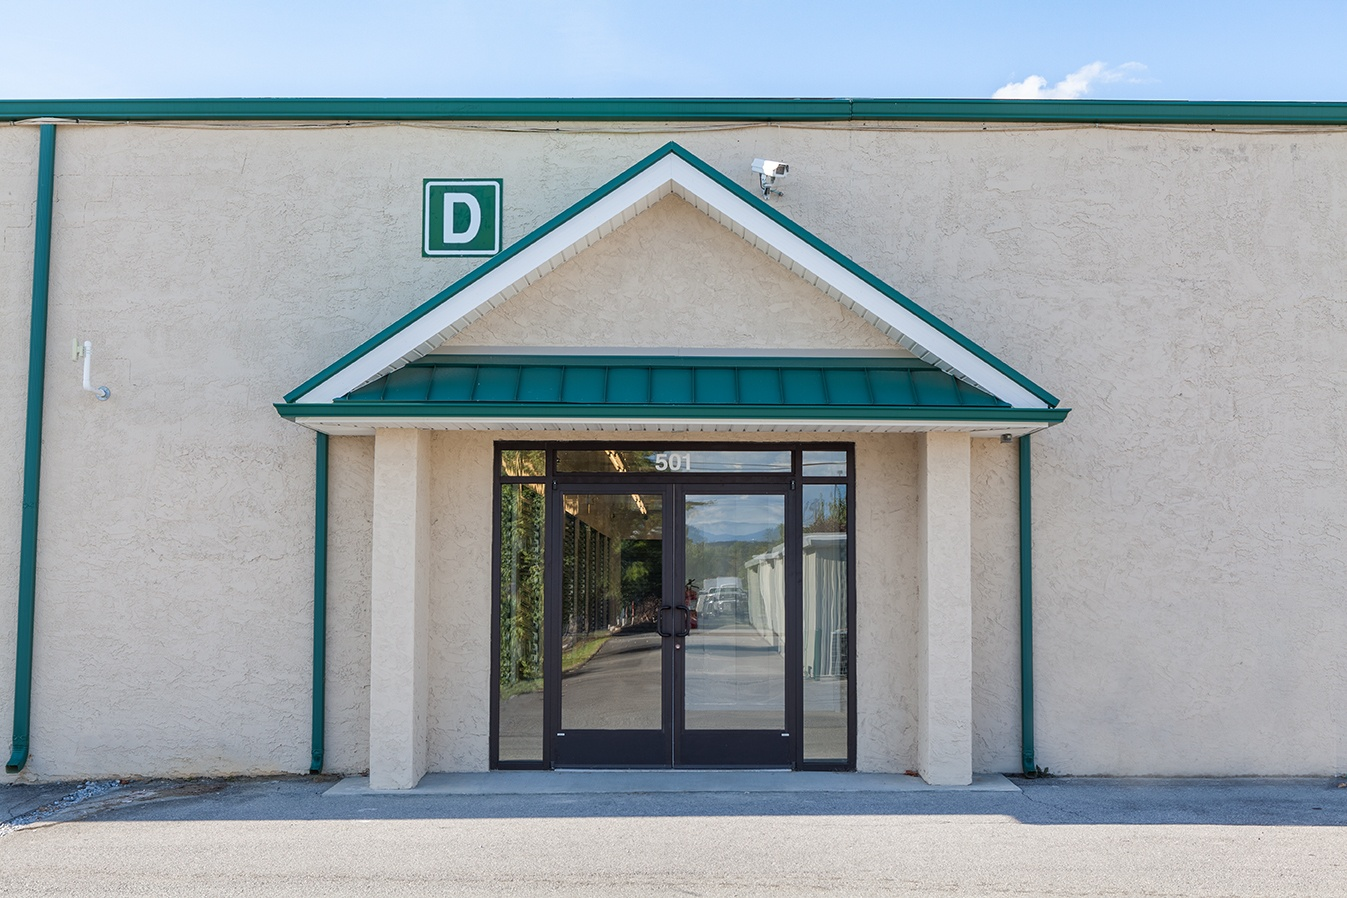 Johnson City self storage has a clean exterior building